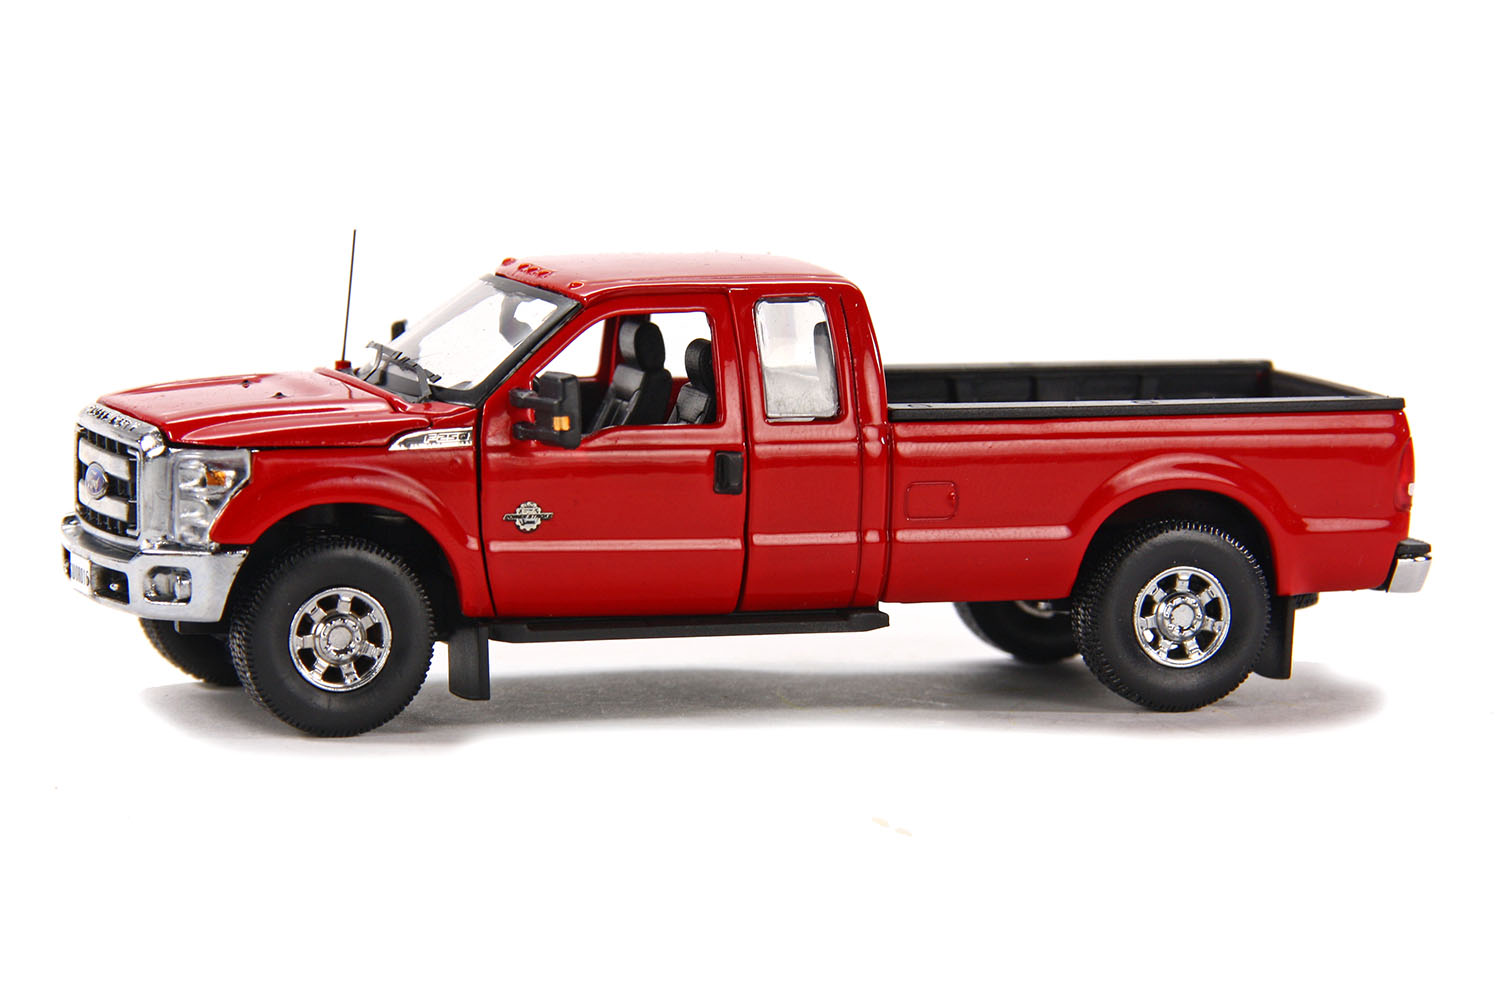 Ford F Super Cab Truck Bed